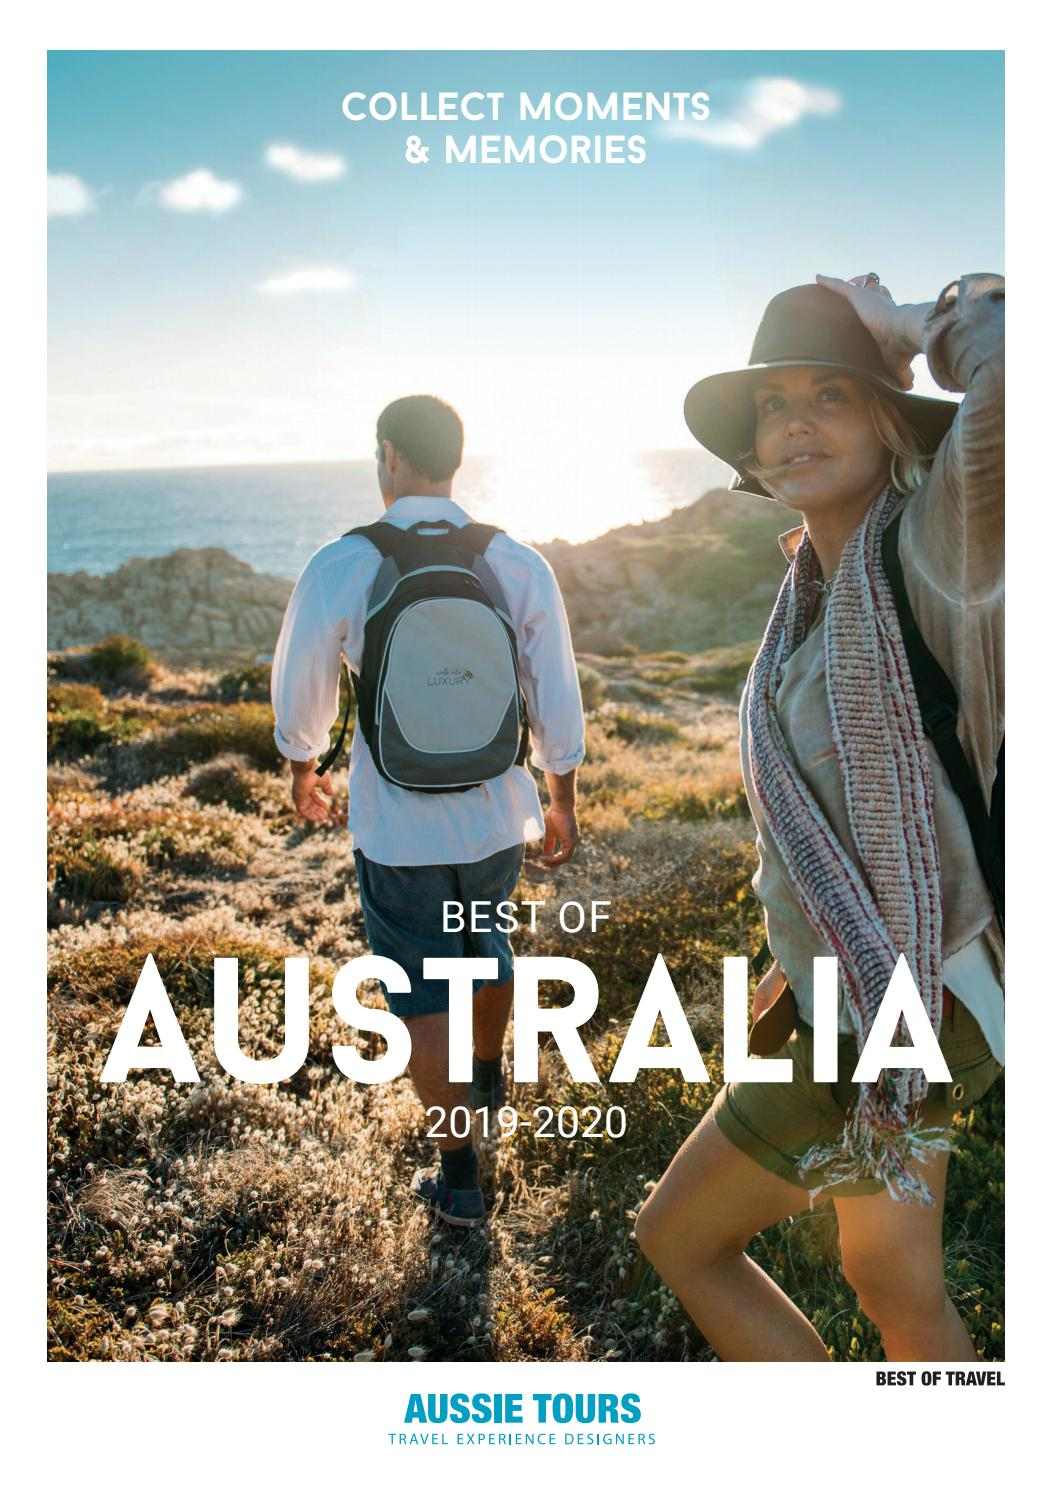 fdb735ebd5a Best of Australia 2019 - Aussie Tours - Best of Travel by Frank Ypma - issuu